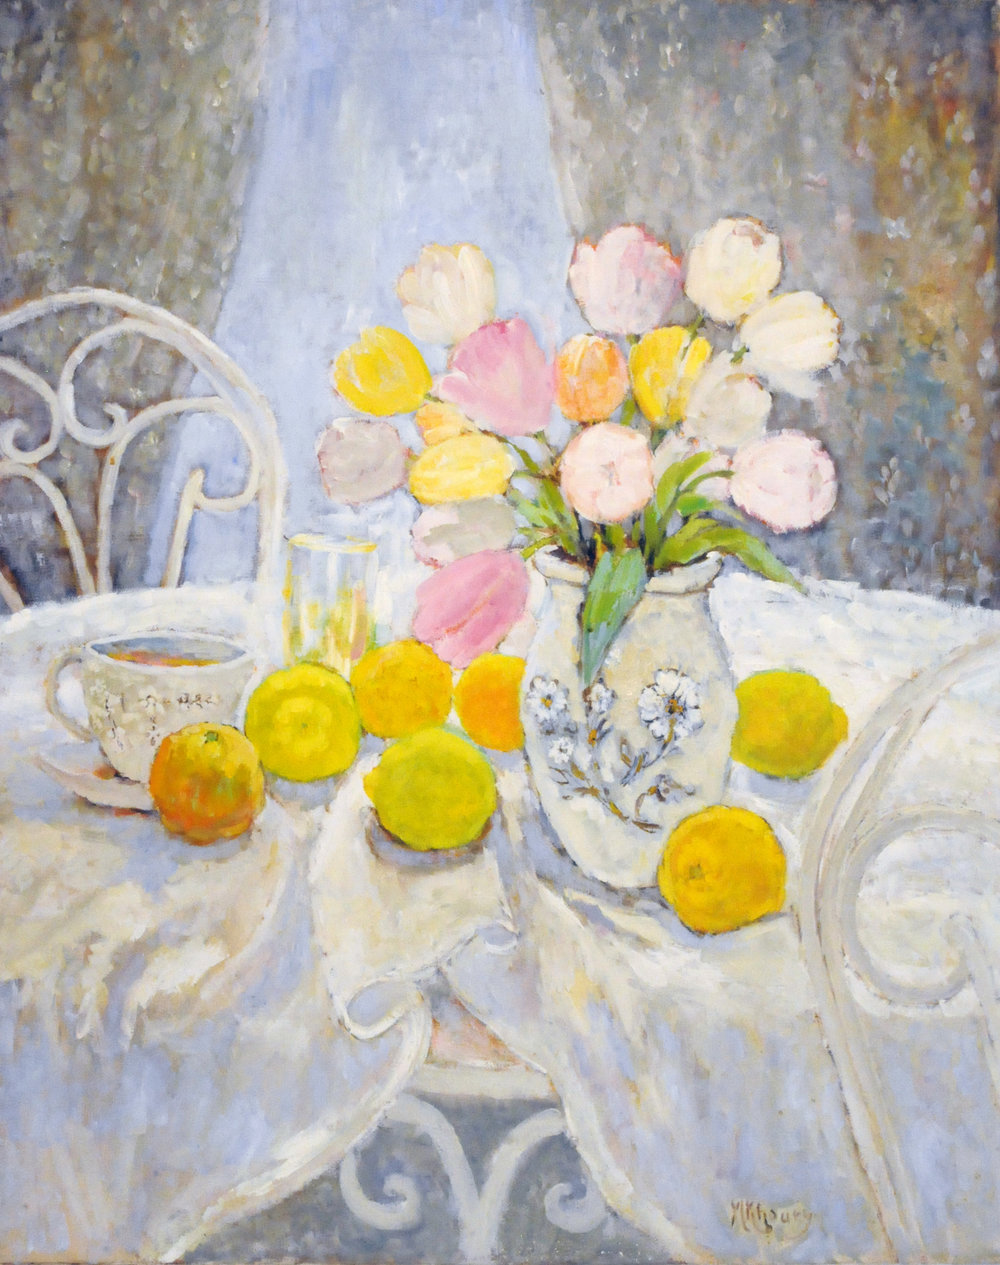 Still life with tulips & citrus,Michael Khoury